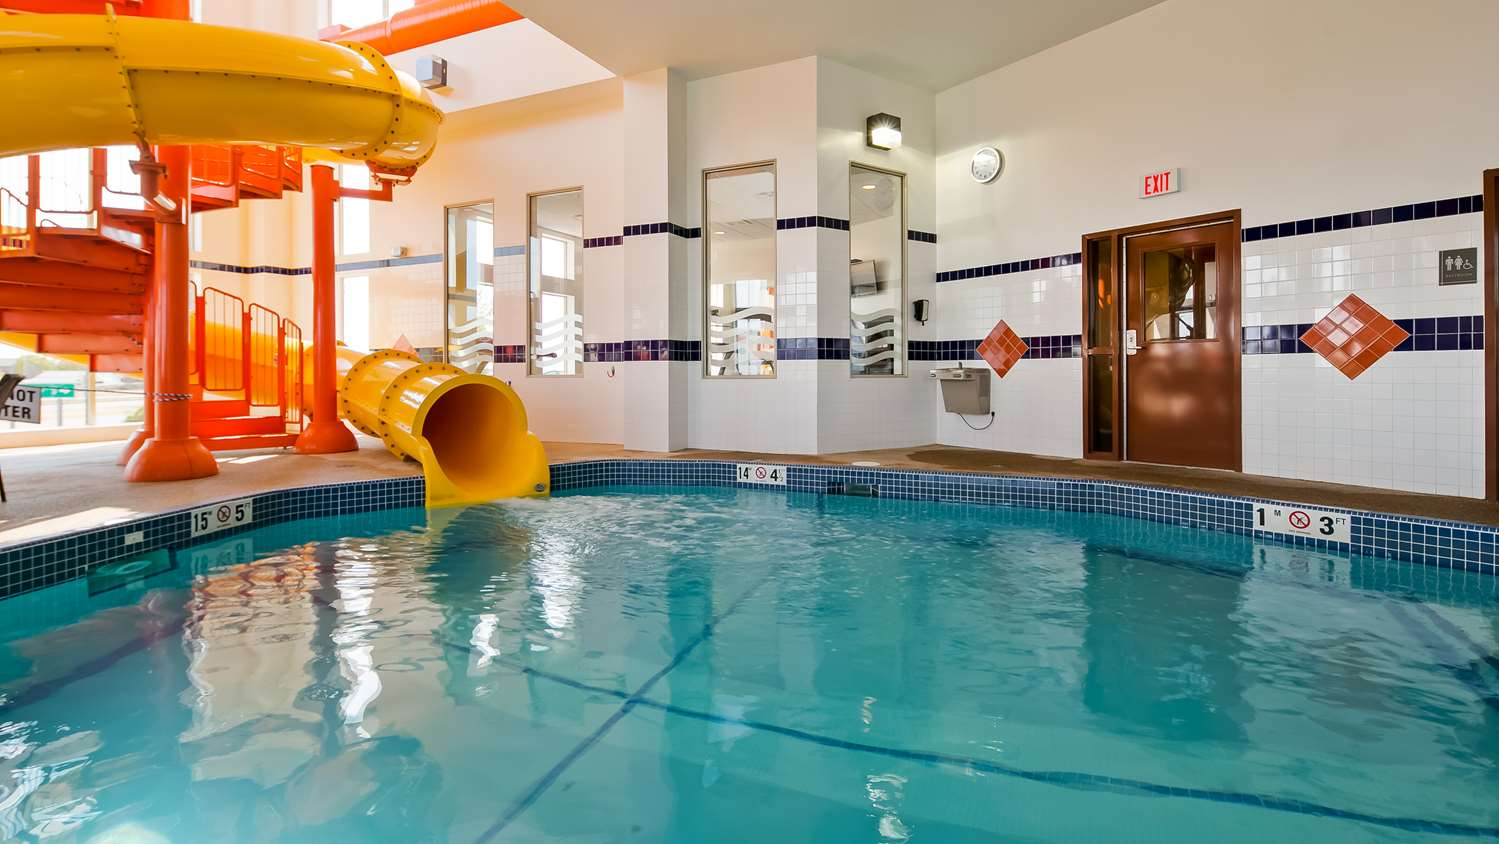 Pool - Best Western Plus Service Inn Lethbridge